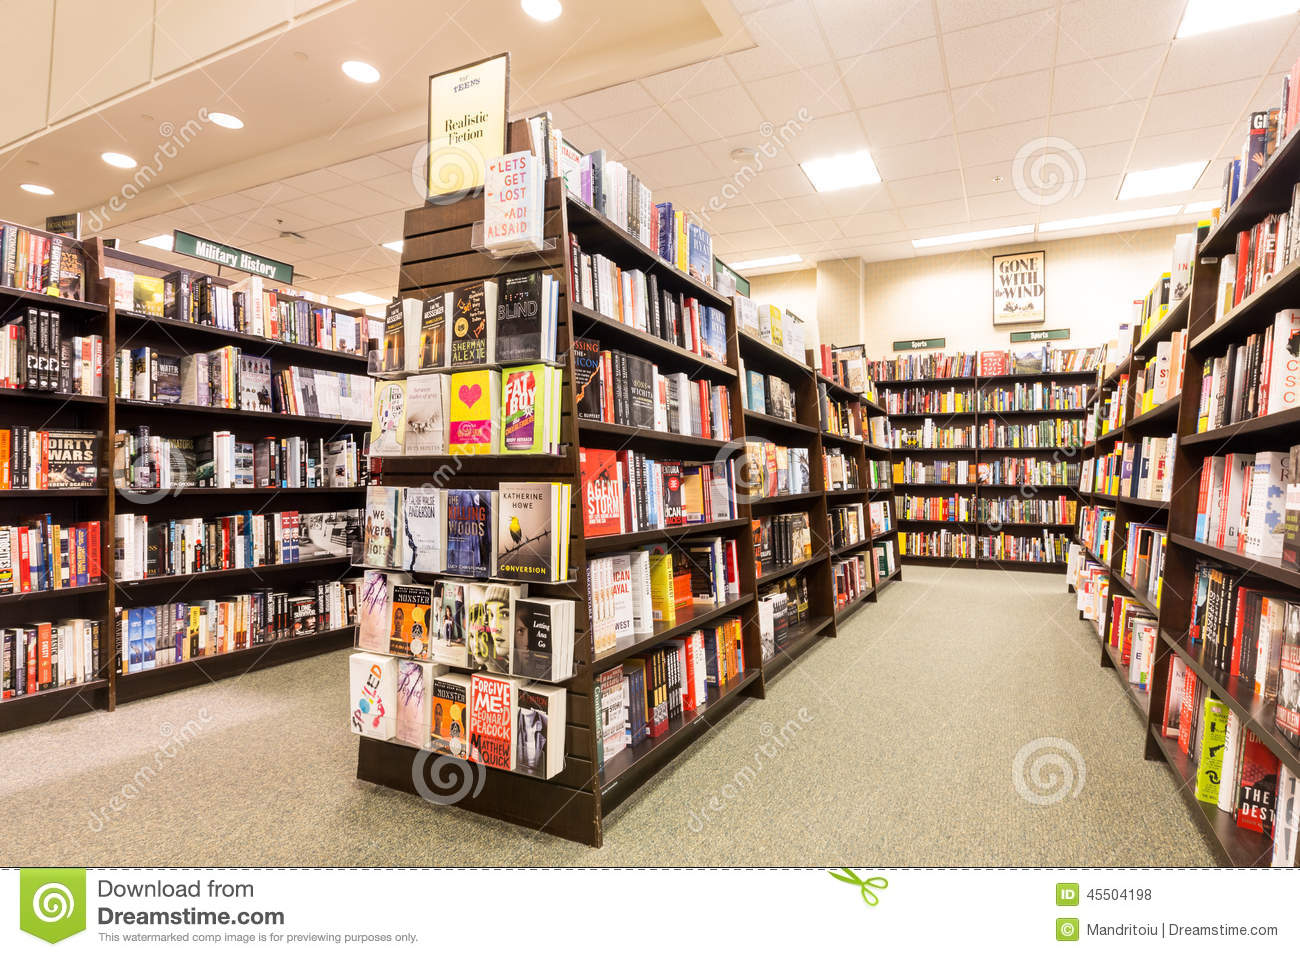 Bookshelves In A Barnes & Noble Bookstore Editorial Stock Photo.